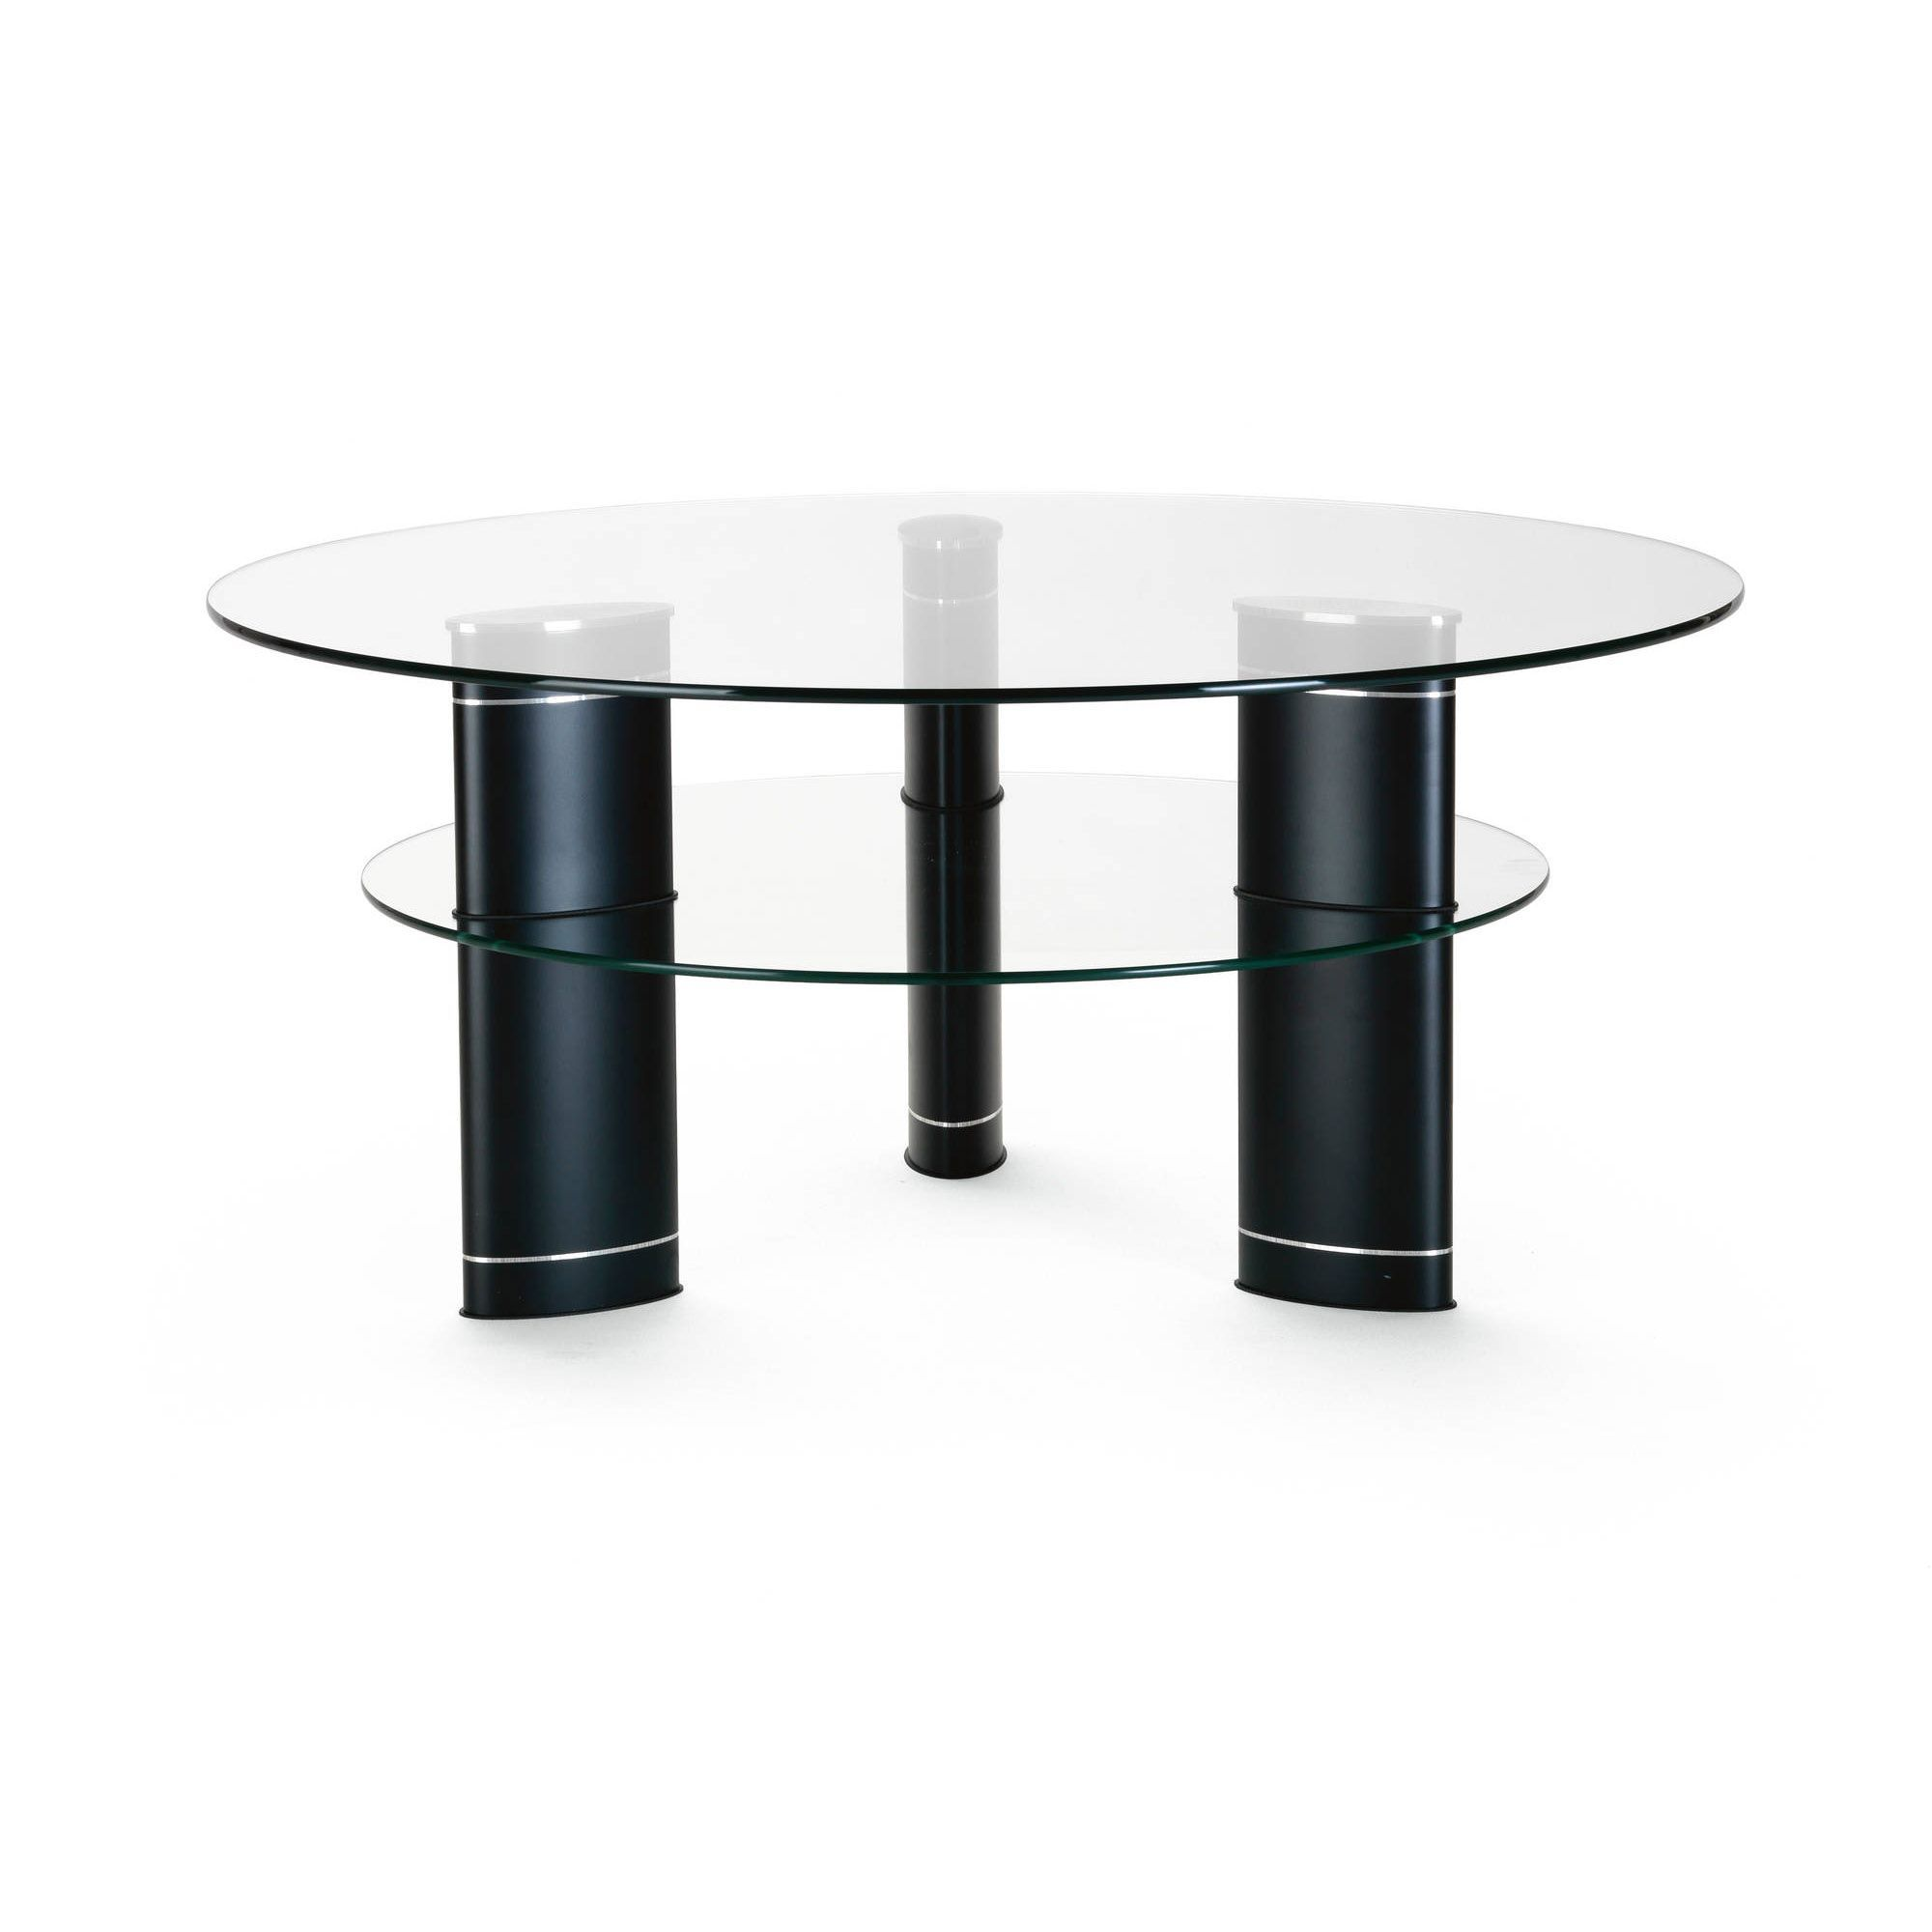 Round Glass Tables For Kitchen Ekornes Jazz Round Glass Table Stressless Cookes Furniture